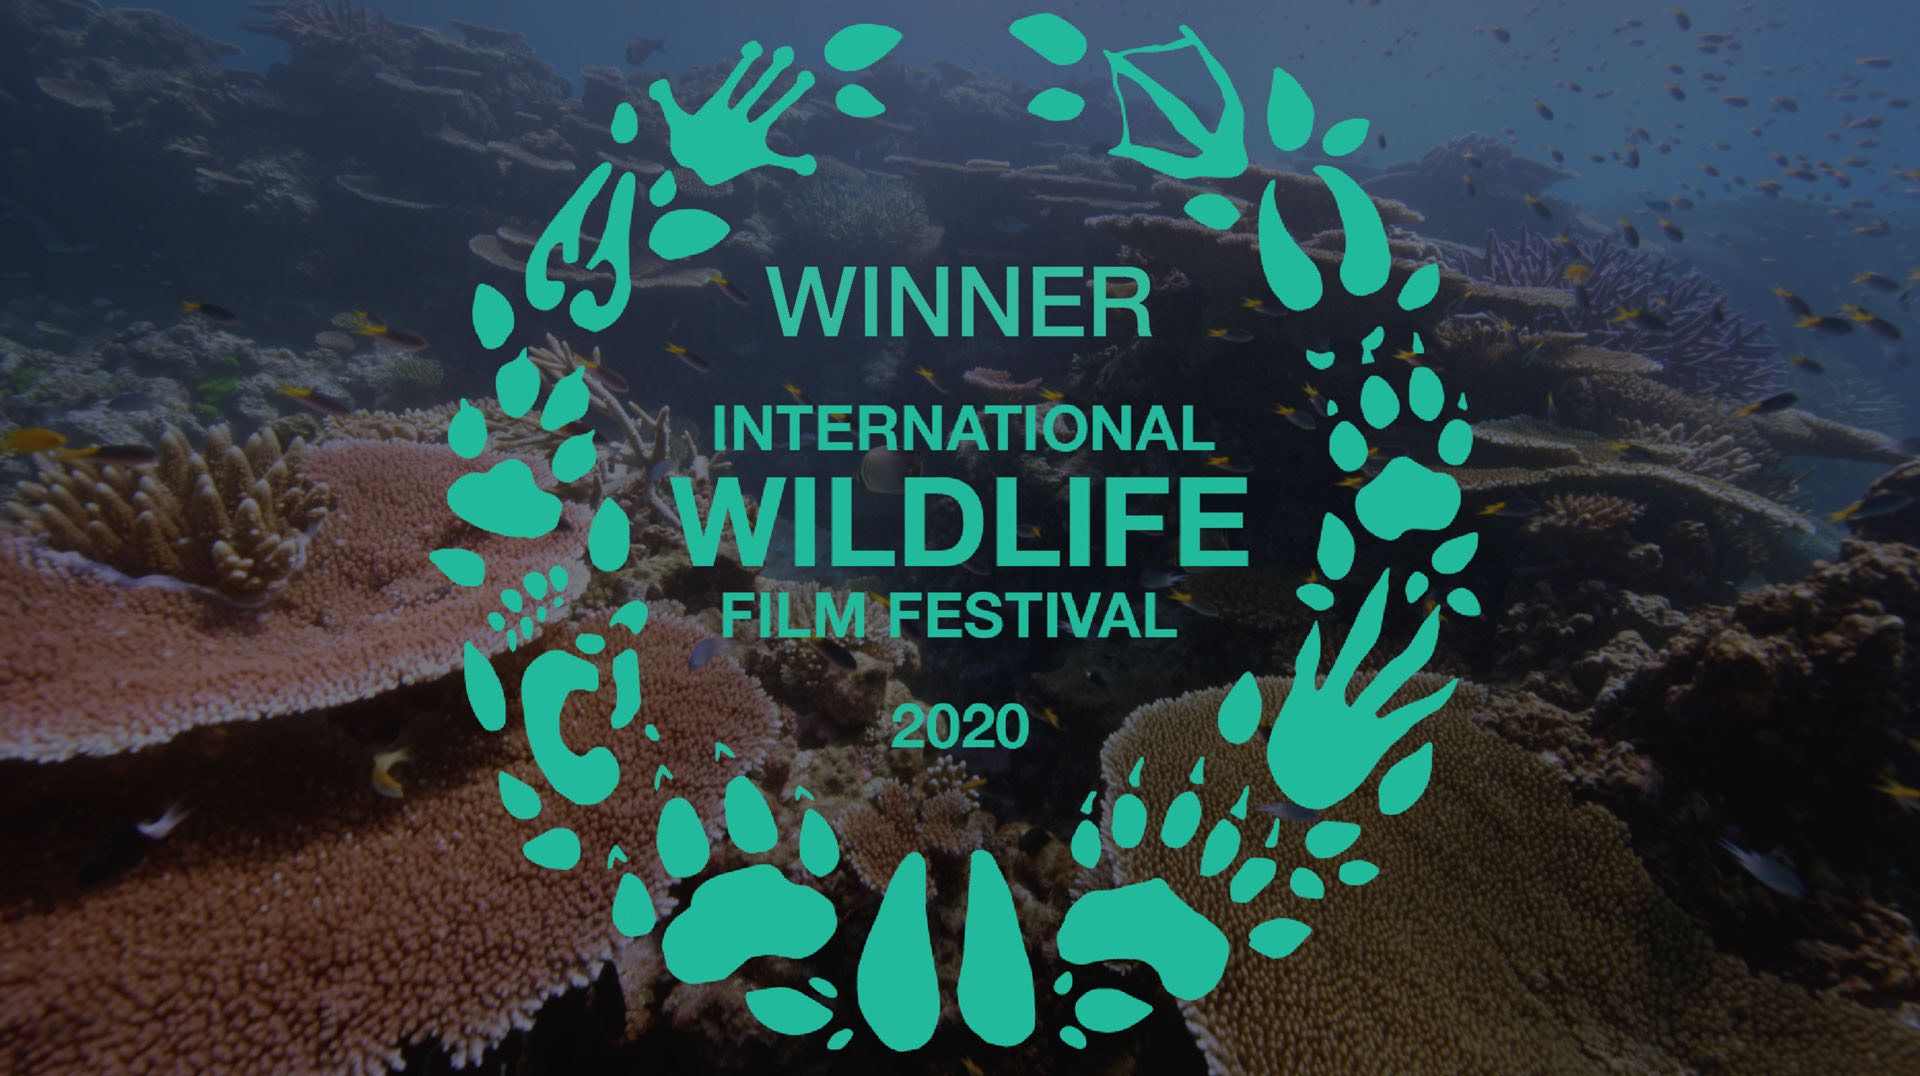 Lost Cities won at the International Wildlife Film Festival 2020.